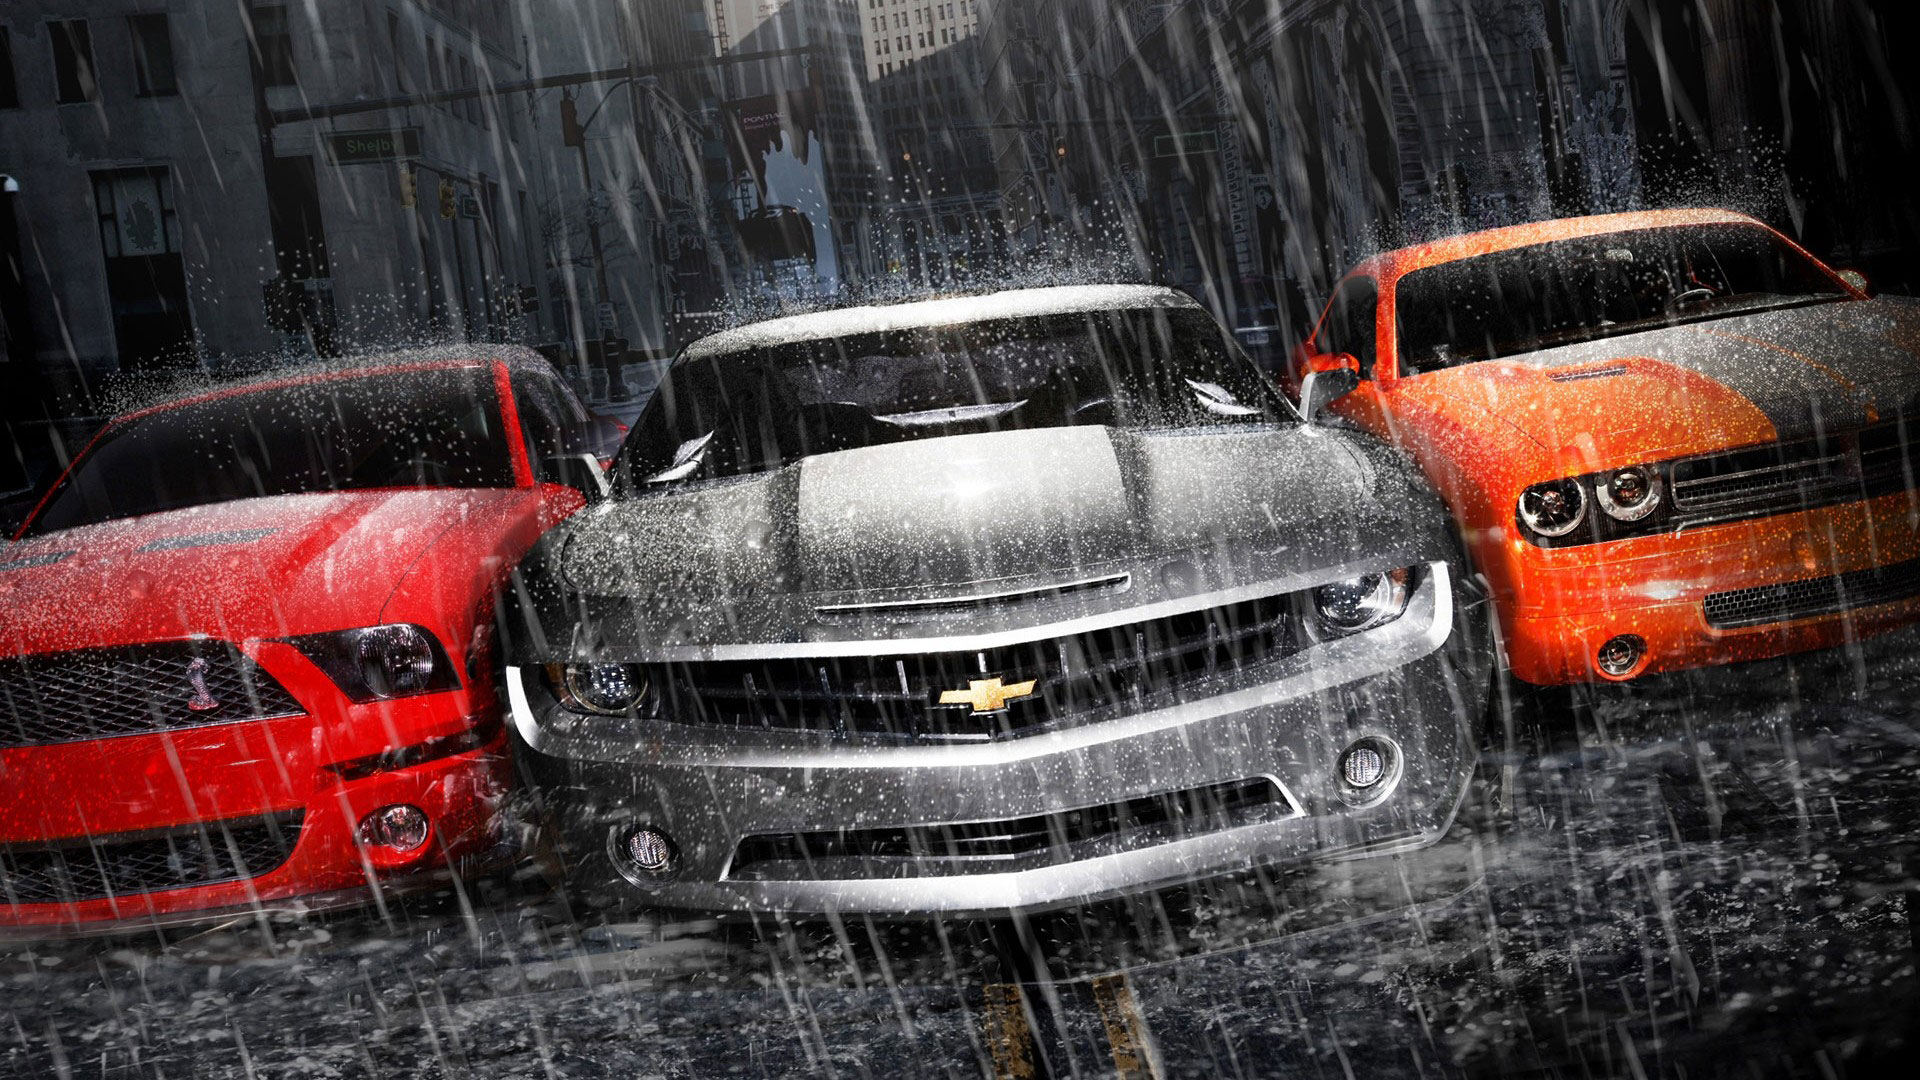 Cool-Cars-Hd-in-1920x1080PX-with-wallpaper-wp3604280